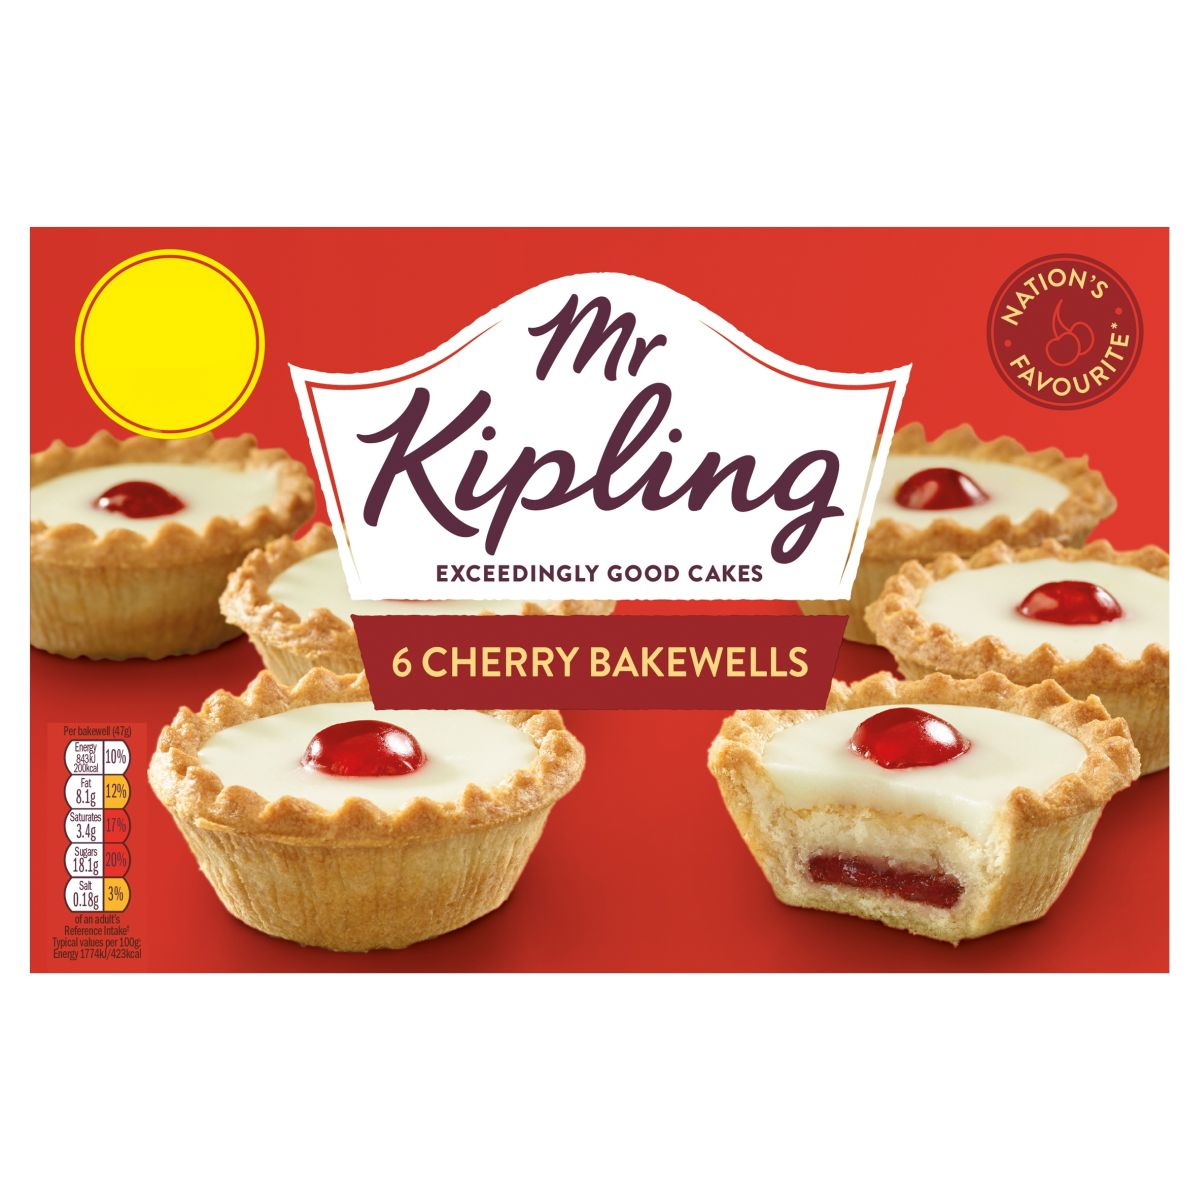 Mr Kipling owner Premier Foods appoints new CEO and chairman